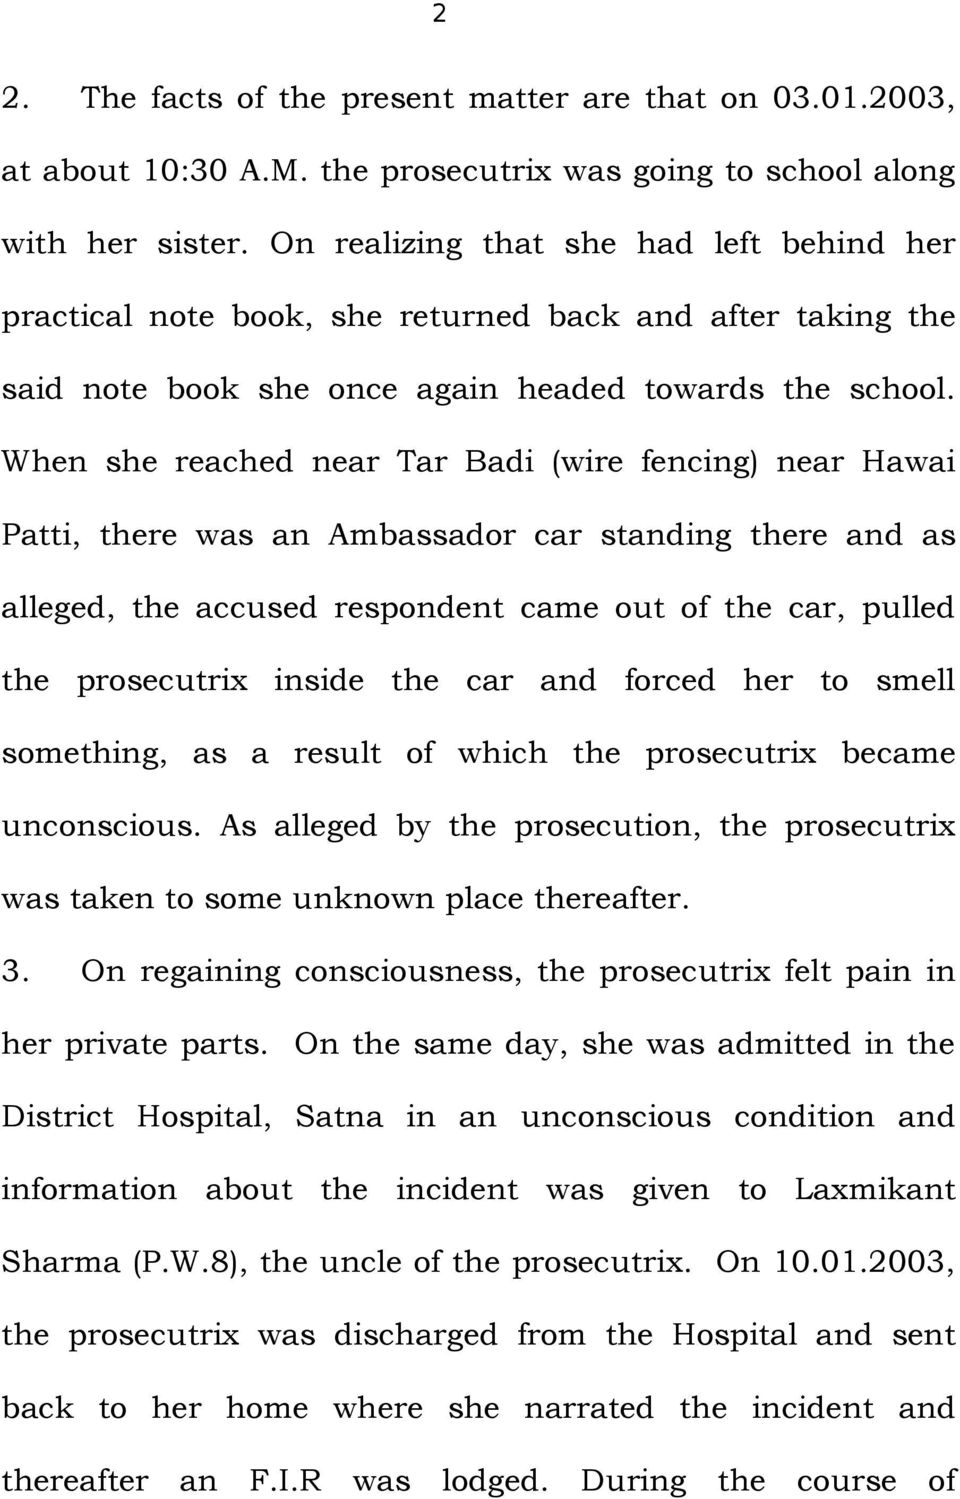 When she reached near Tar Badi (wire fencing) near Hawai Patti, there was an Ambassador car standing there and as alleged, the accused respondent came out of the car, pulled the prosecutrix inside